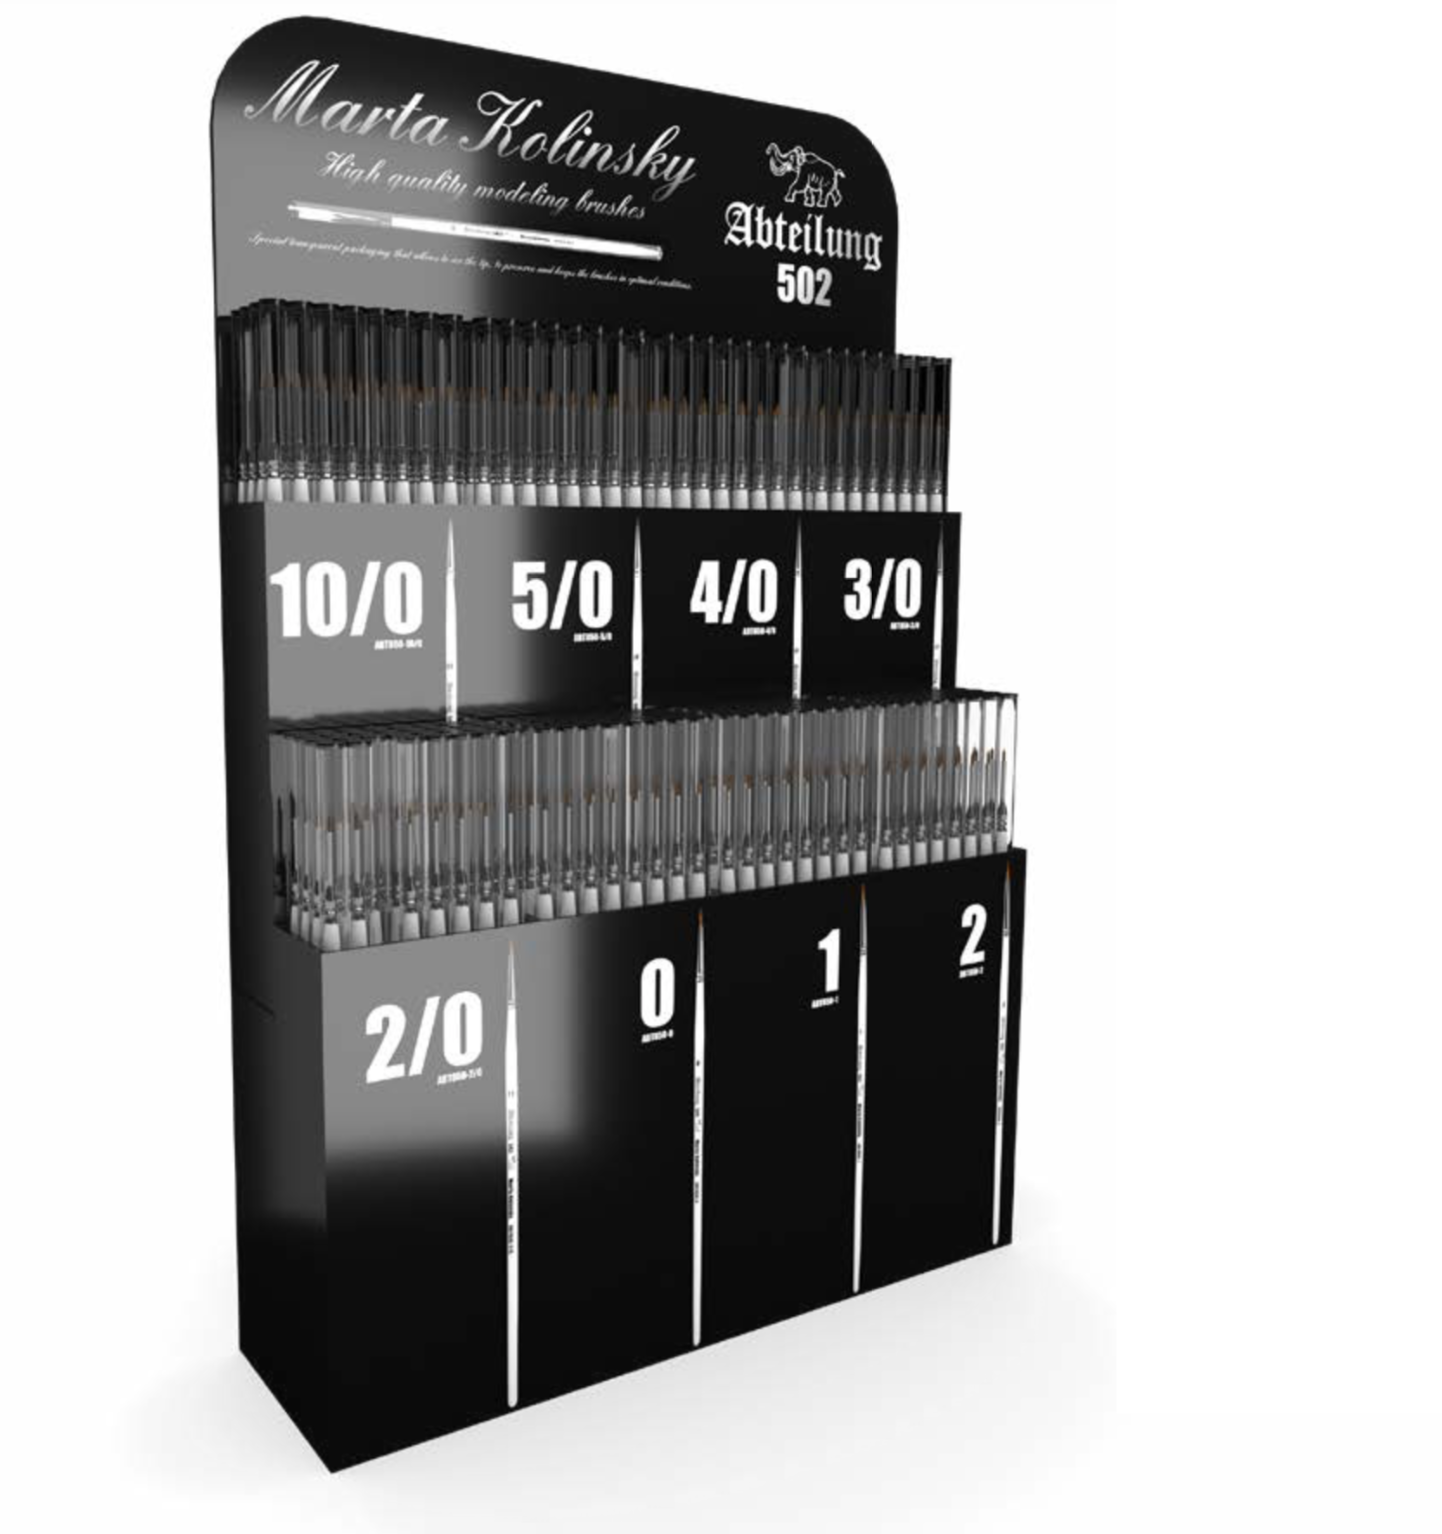 Abteilung502 Kolinsky Brushes Display: 160 Brushes (All 8 Refs X 20 Units) Display Rack